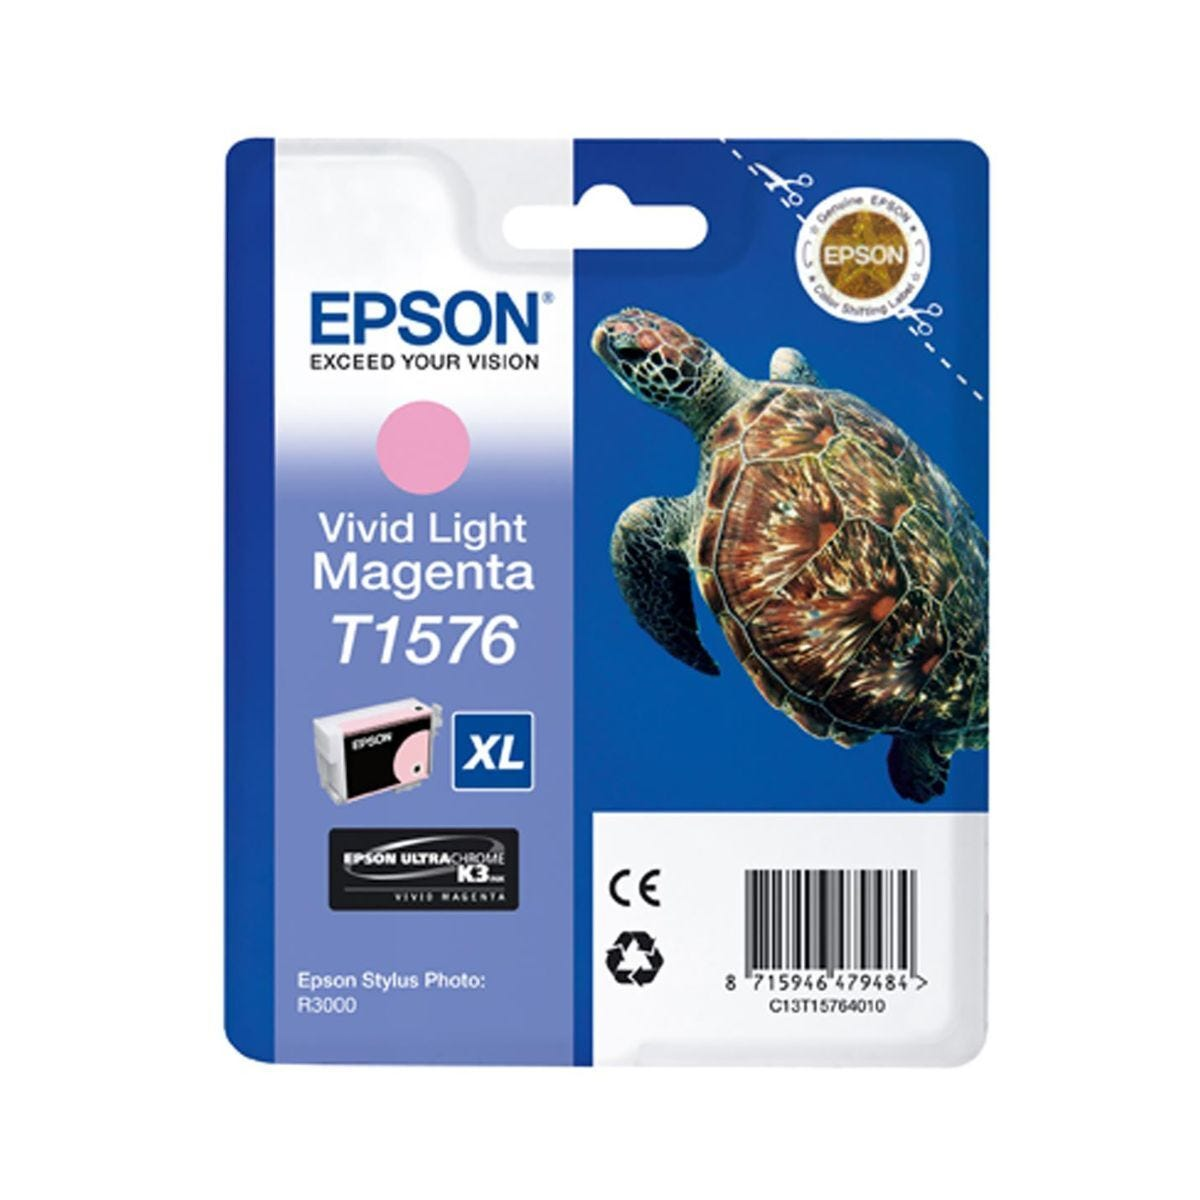 Epson R3000 Vivid Light Magenta Ink Cartridge